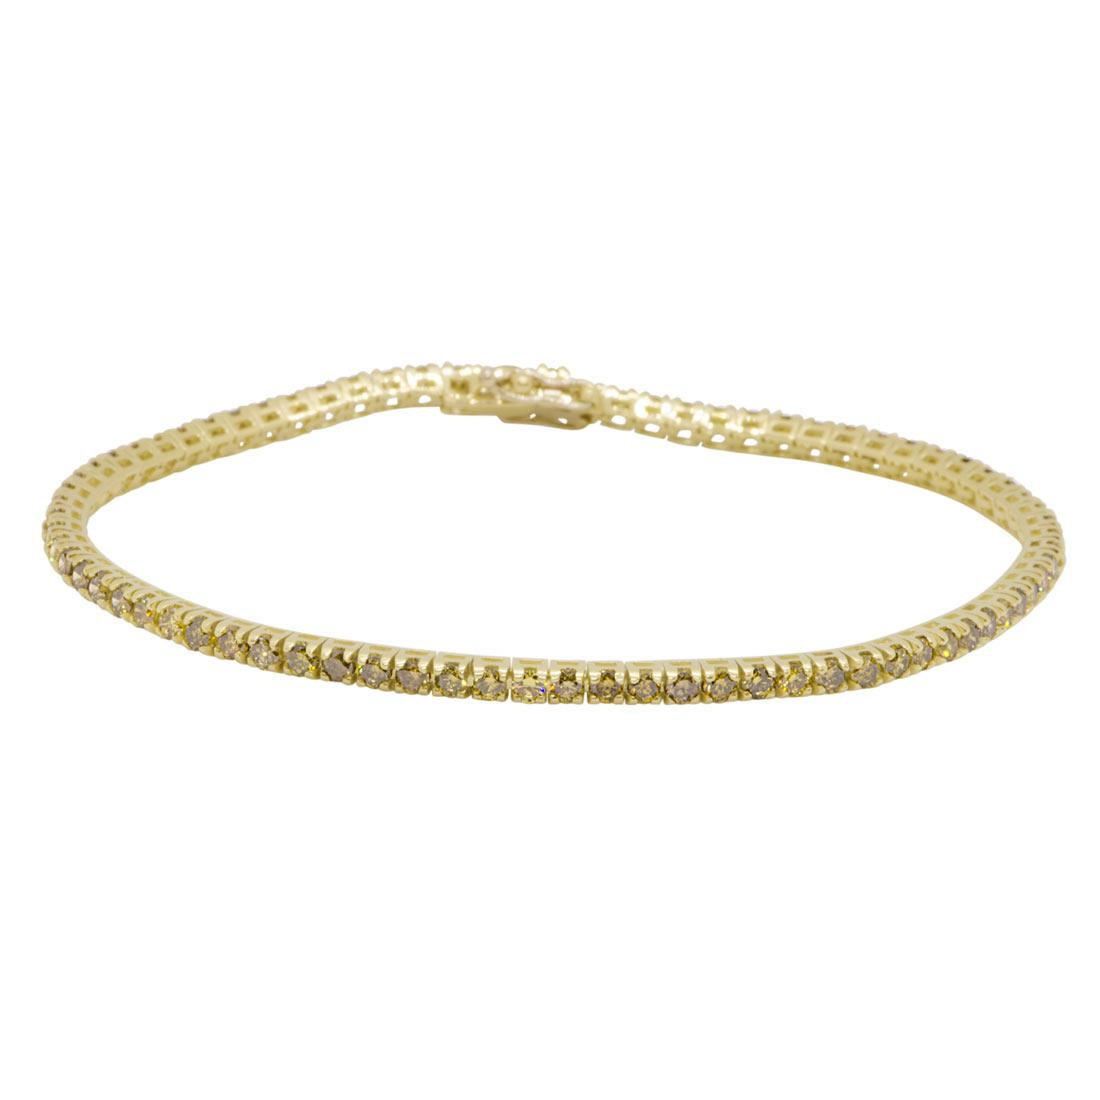 Bracciale tennis in oro giallo con diamanti 2,85 ct - ORO&CO